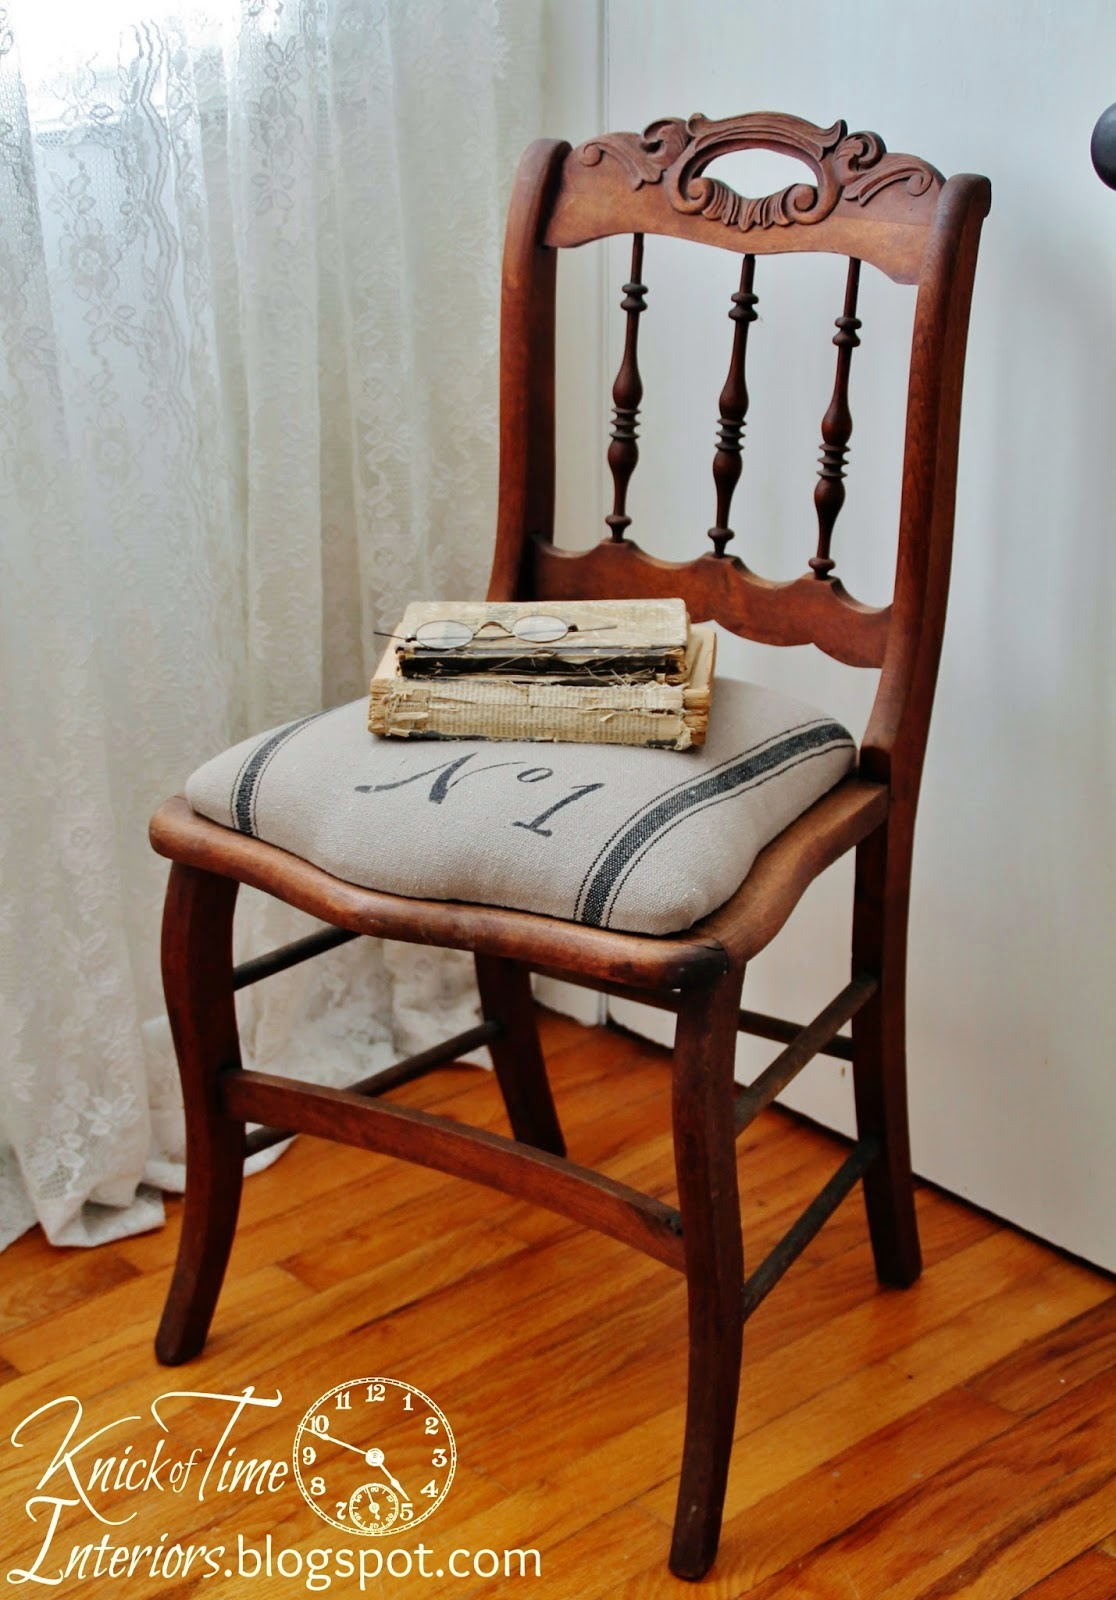 I knew just what my little chair needed to be beautiful again! - Homeroad: Antique Spindle Chair